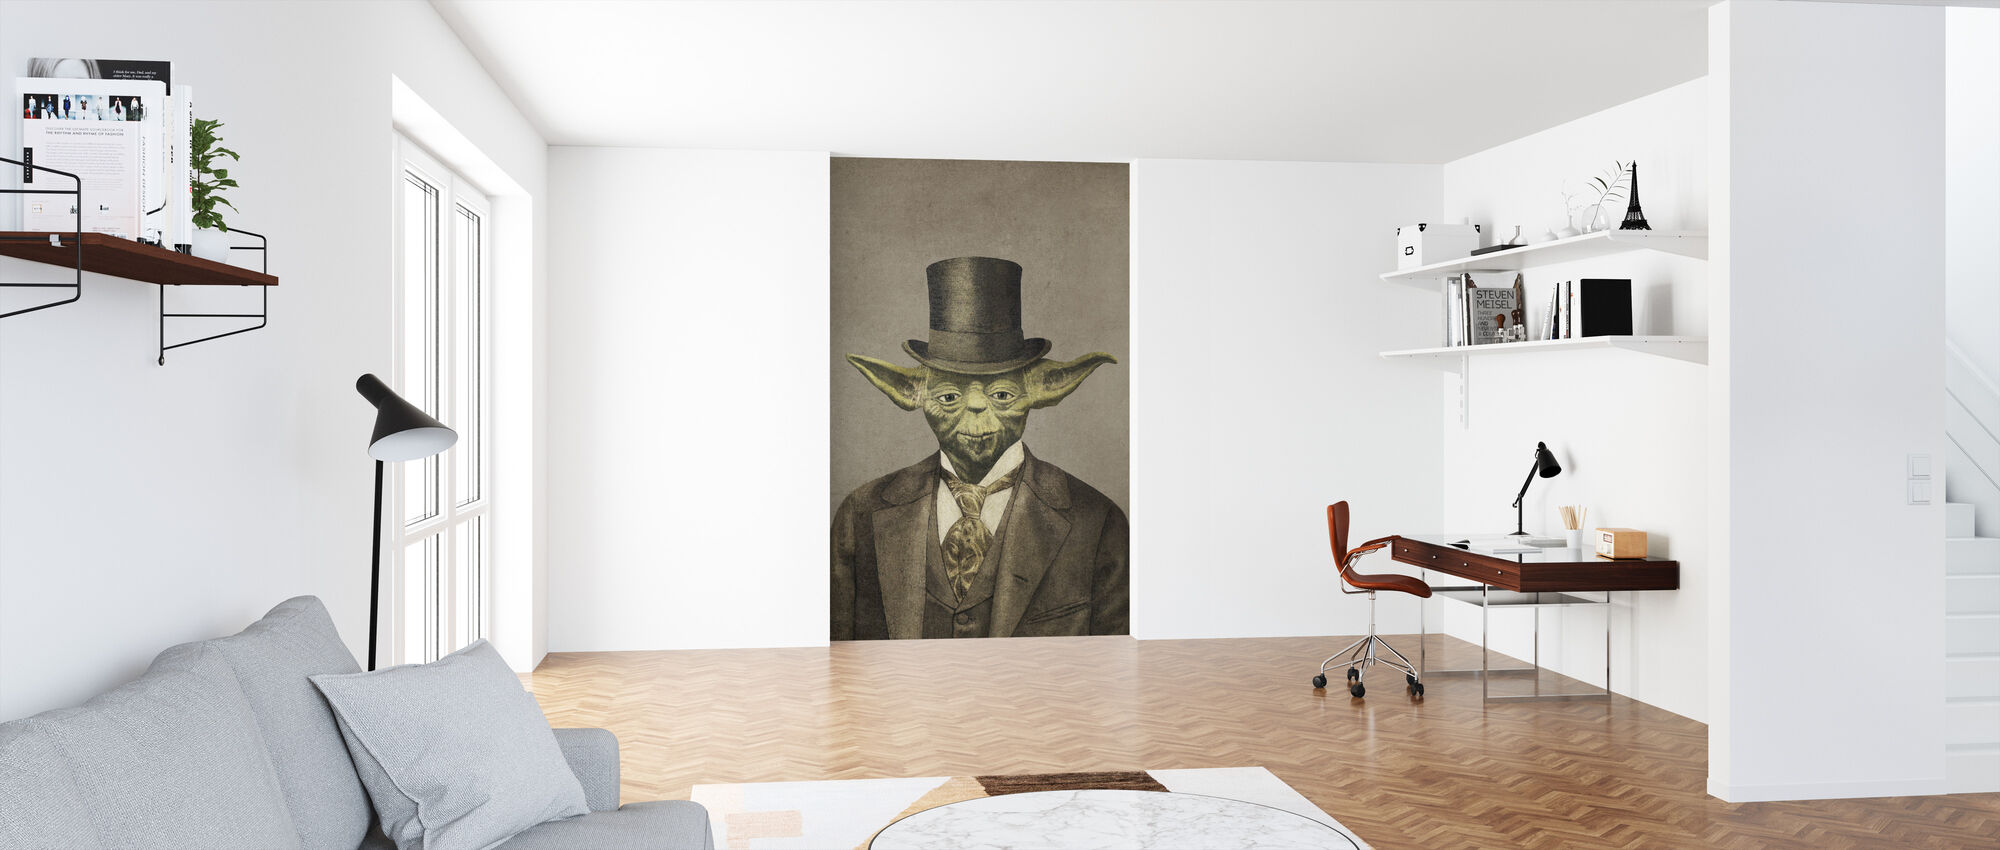 Victorian Wars Sir Yodington - Wallpaper - Office